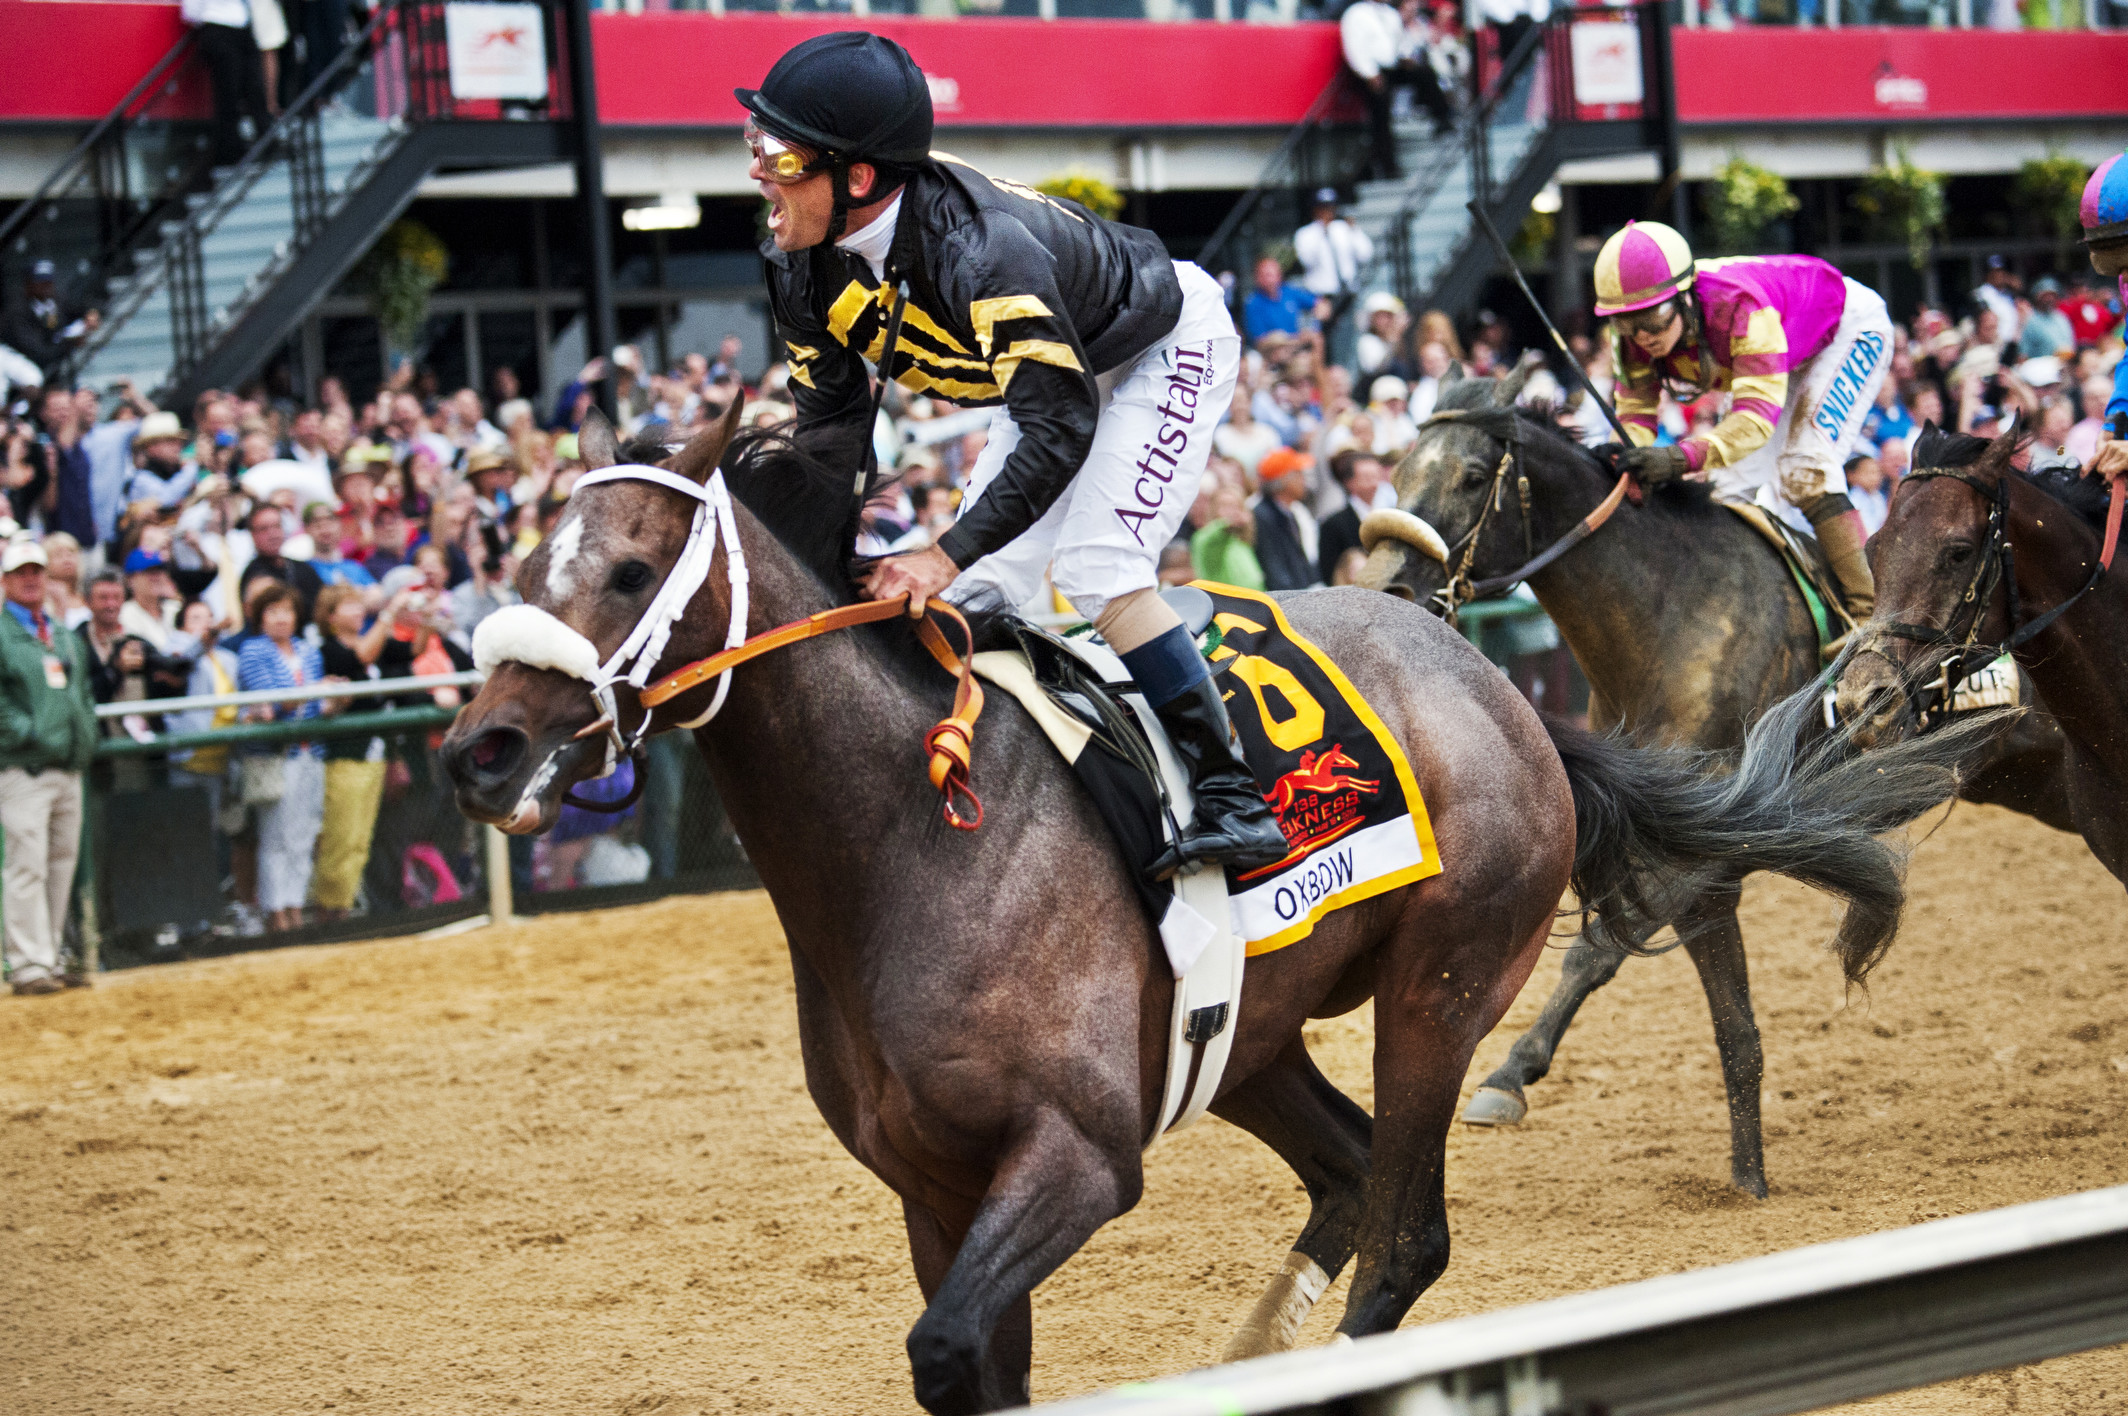 Oxbow, ridden by Gary Stevens wins the 138th running of the Preakness Stakes on Saturday May 18, 2013. (Amadna Voisard for NBC Sports)